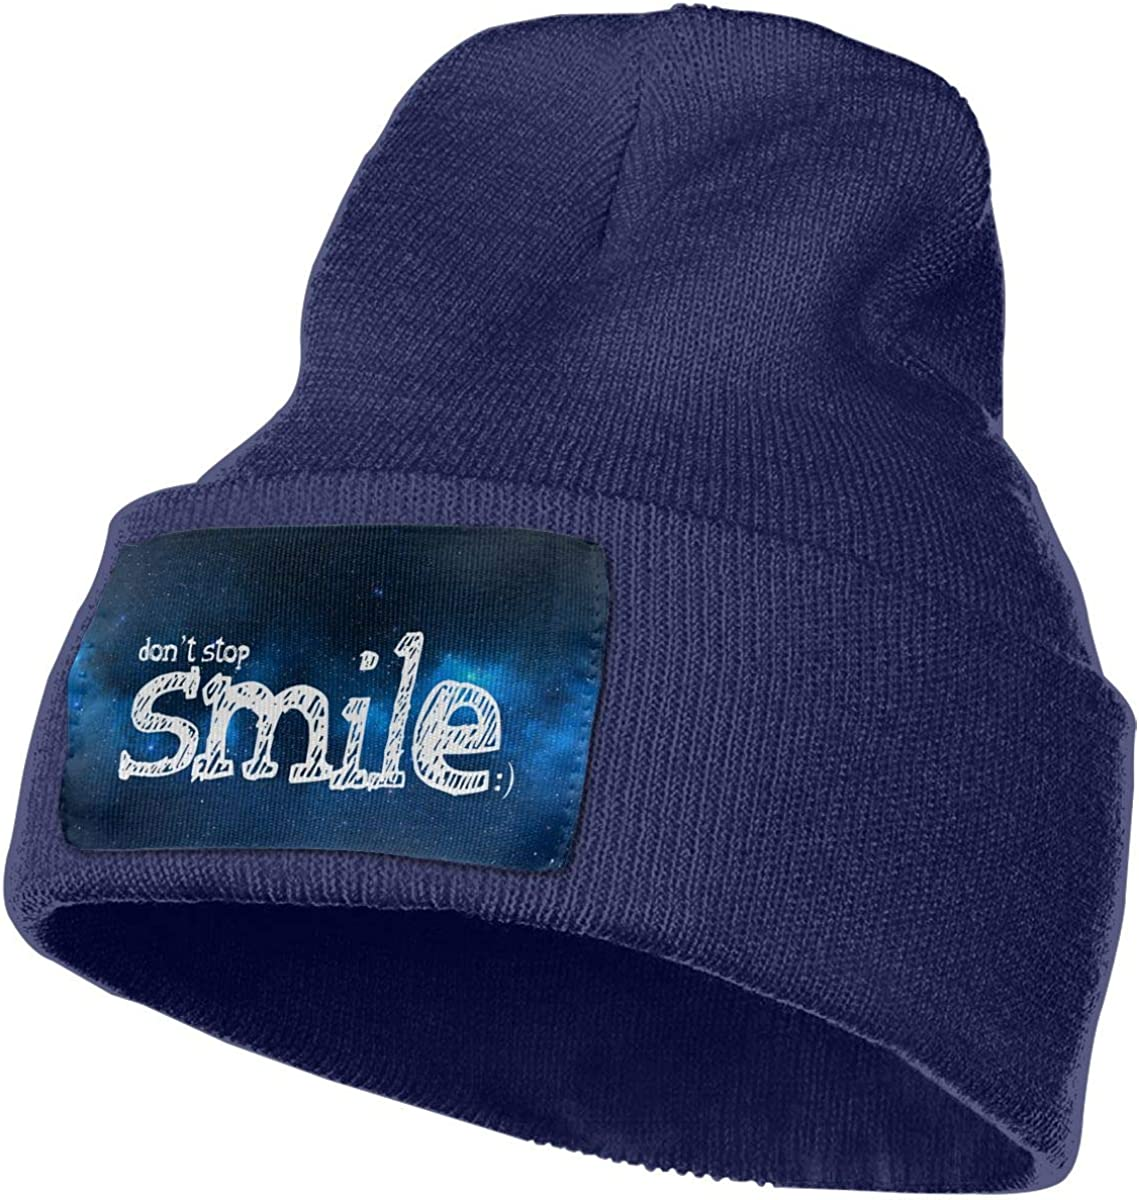 Helidoud Dont Stop Smile Winter Beanie Hat Knit Skull Cap for for Men /& Women